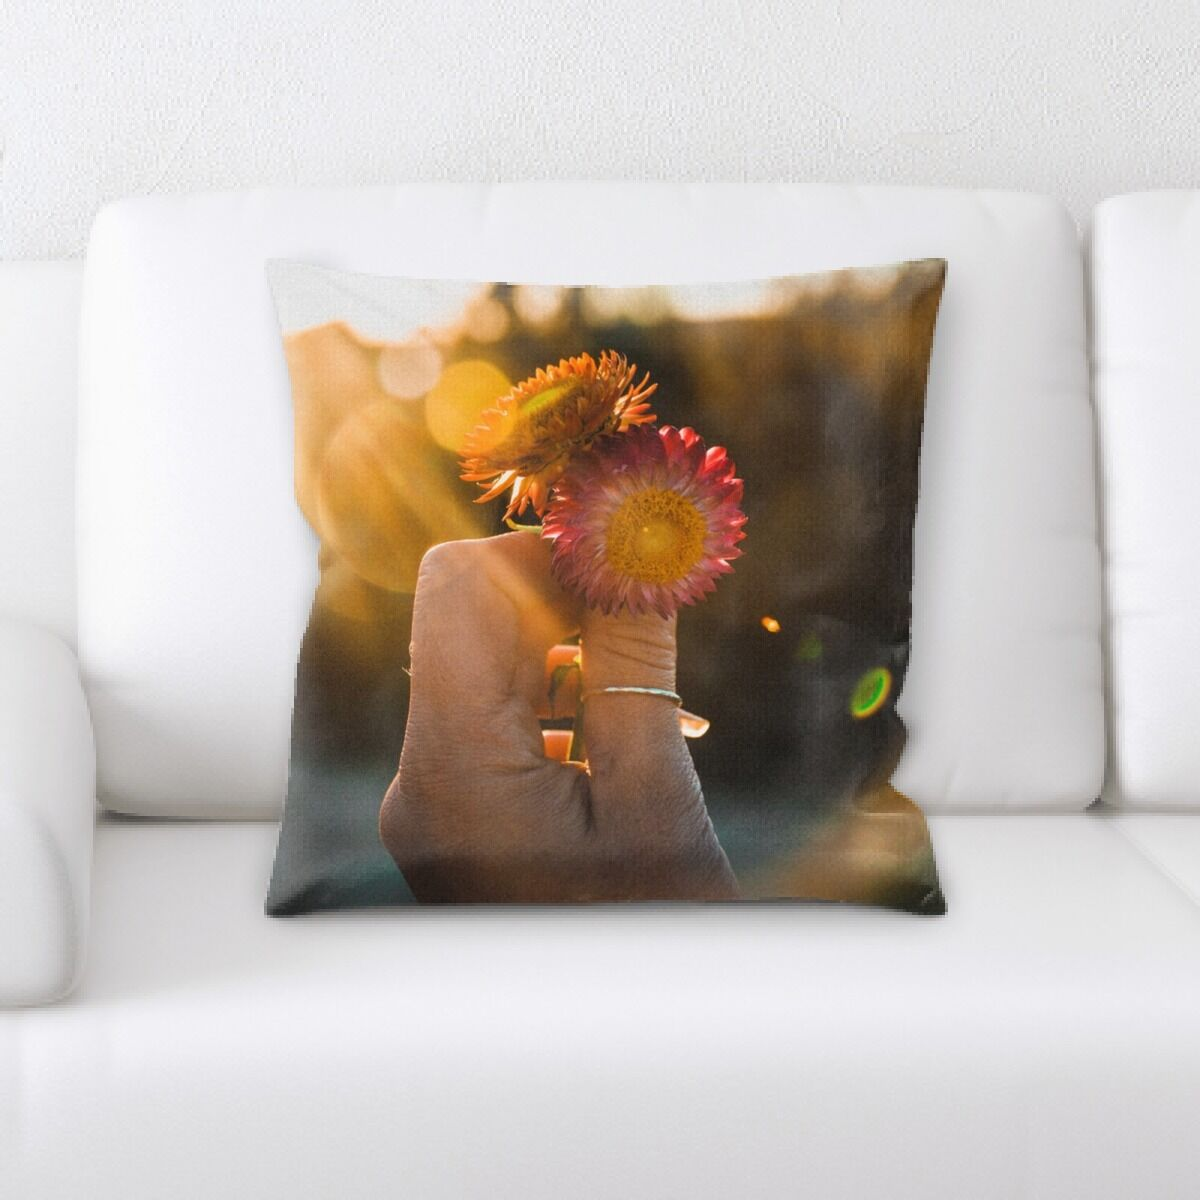 Esquivel Meditation and Calming Moments (29) Throw Pillow